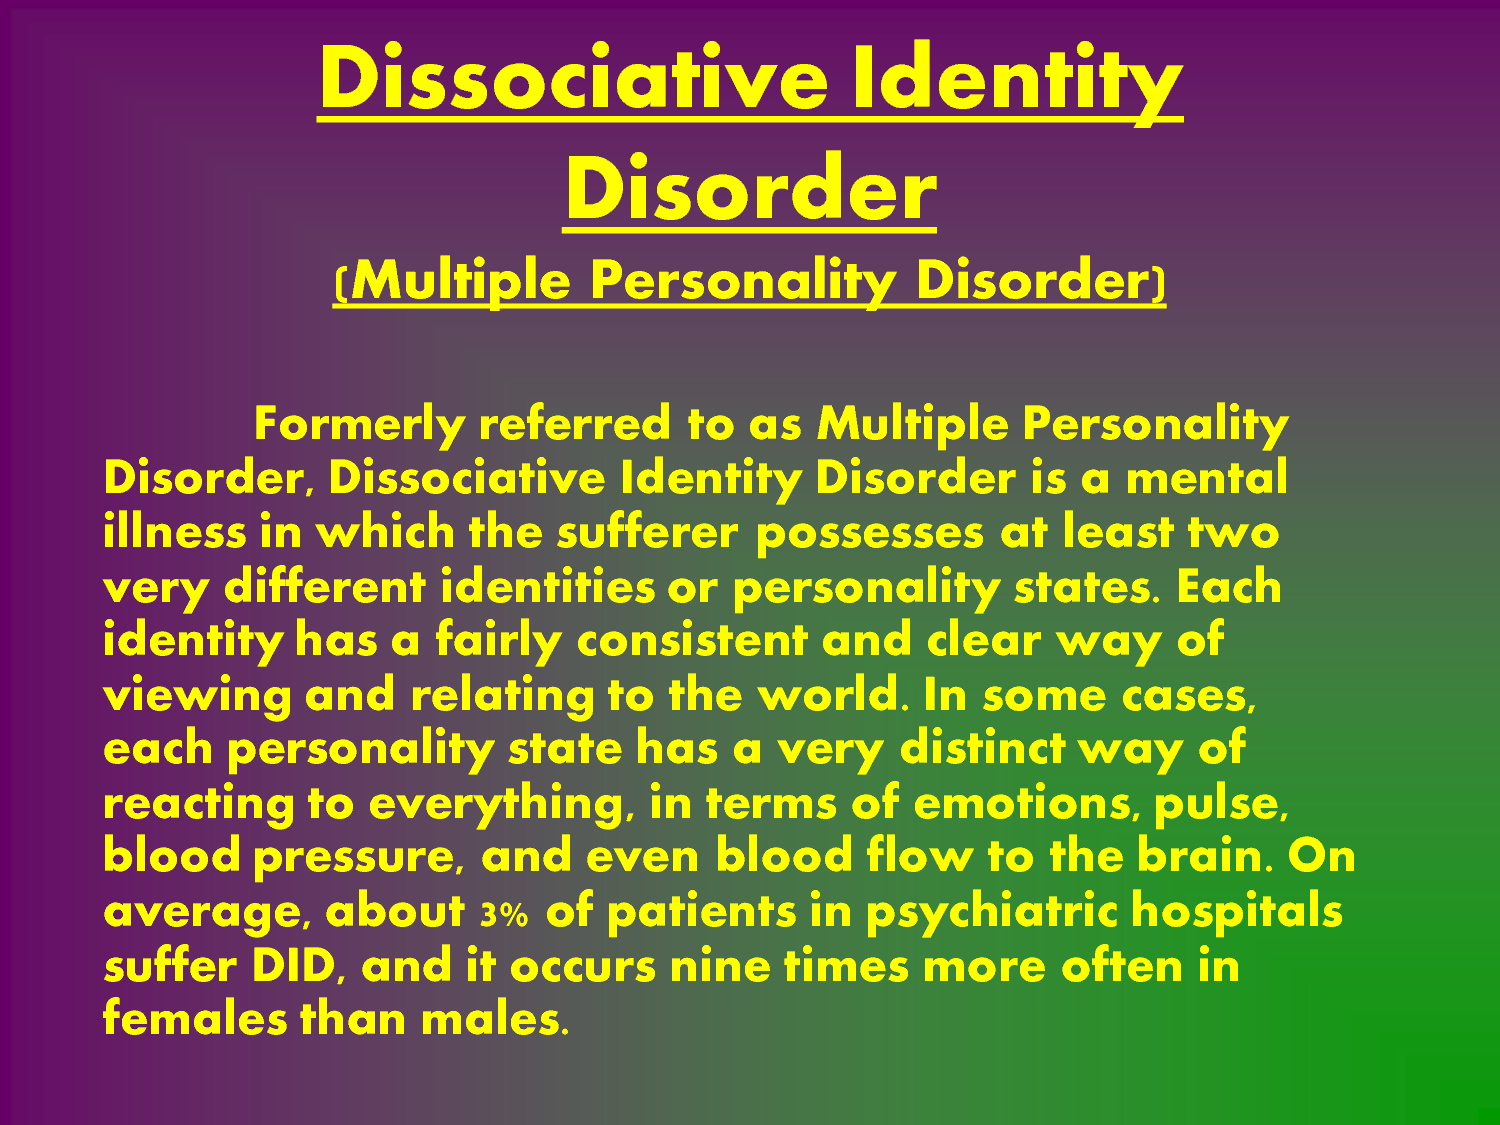 key facts about dissociative identity disorder other specified key facts about dissociative identity disorder other specified dissociative disorder disorders facts about and keys